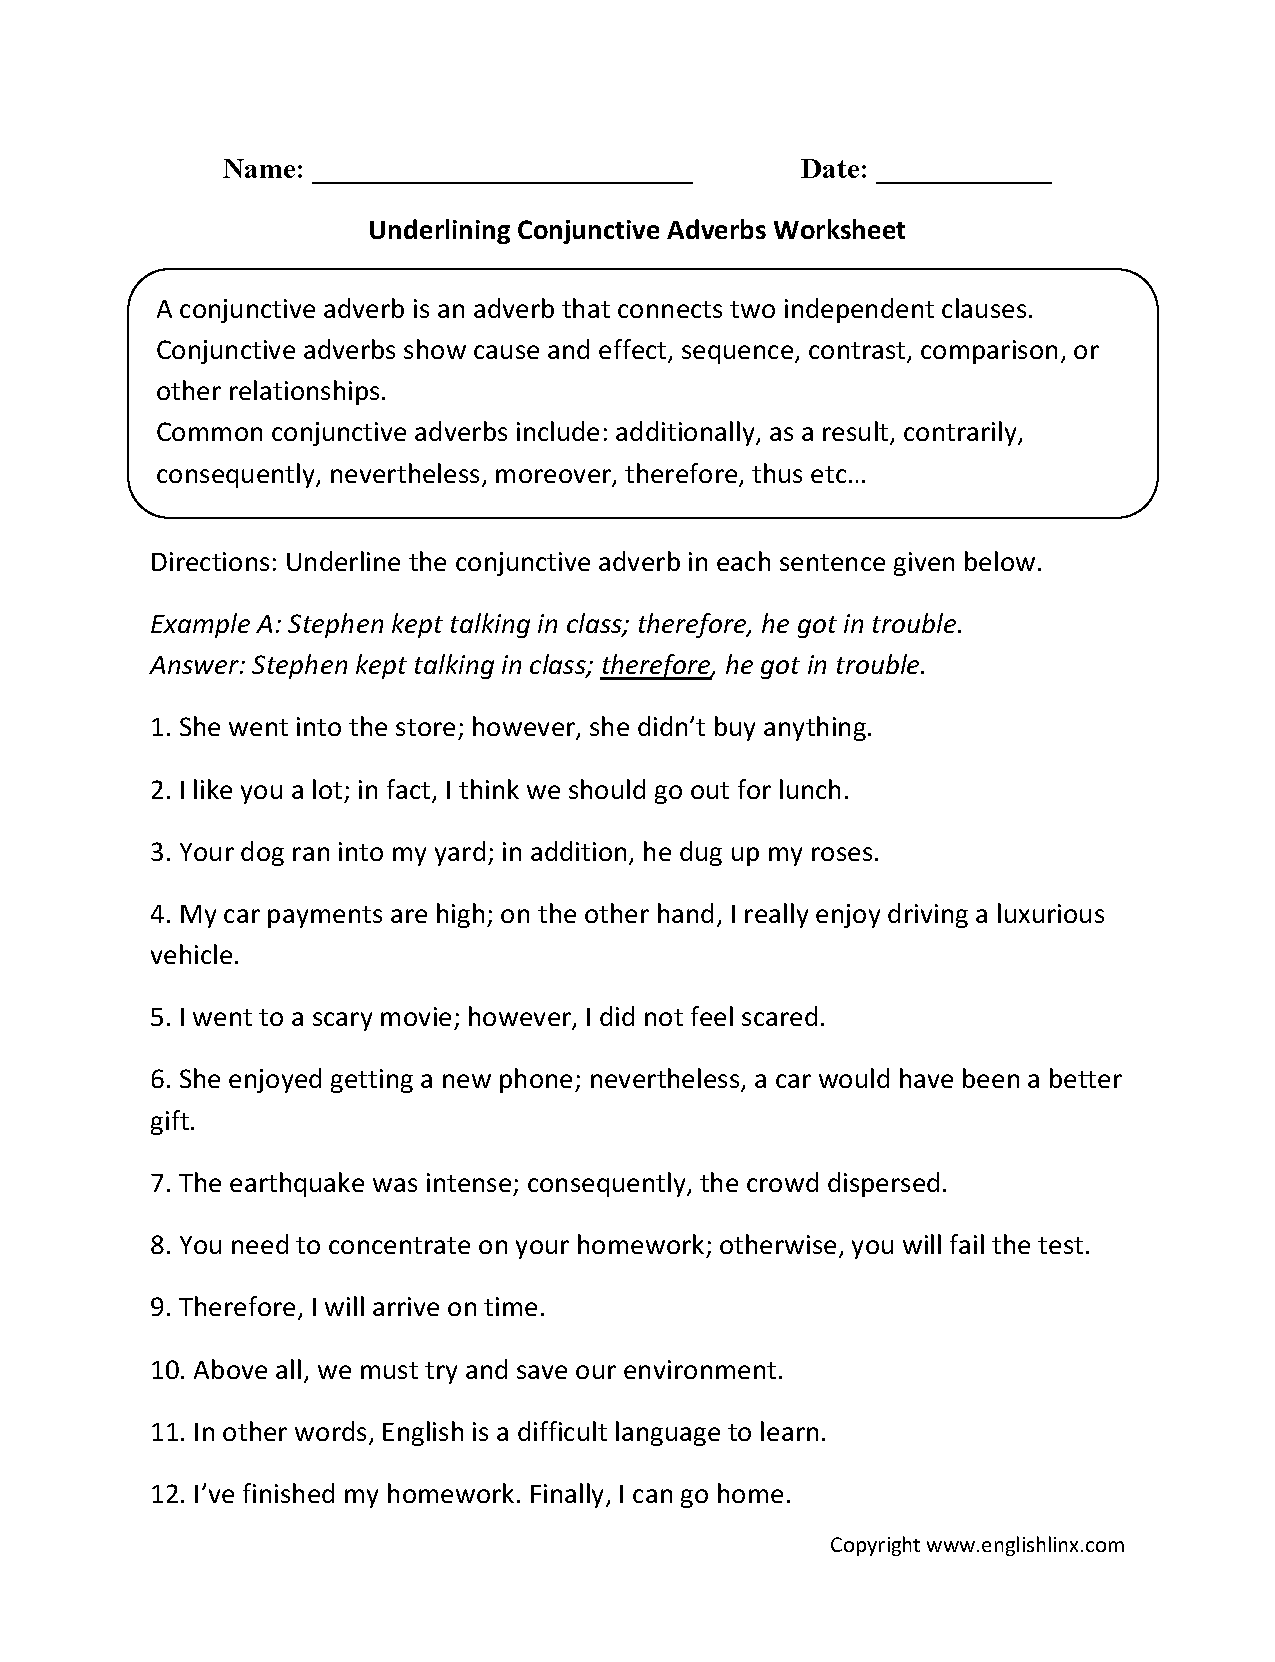 Aldiablosus  Winsome Englishlinxcom  Conjunctions Worksheets With Lovely Worksheet With Appealing Wavelength Worksheets Also Grade  Maths Worksheets In Addition Multiplication Of  Digit Numbers Worksheets And Common Factoring Worksheet As Well As Free Printable Worksheets On Prefixes Suffixes And Root Words Additionally Rounding Decimals Worksheets Printable From Englishlinxcom With Aldiablosus  Lovely Englishlinxcom  Conjunctions Worksheets With Appealing Worksheet And Winsome Wavelength Worksheets Also Grade  Maths Worksheets In Addition Multiplication Of  Digit Numbers Worksheets From Englishlinxcom